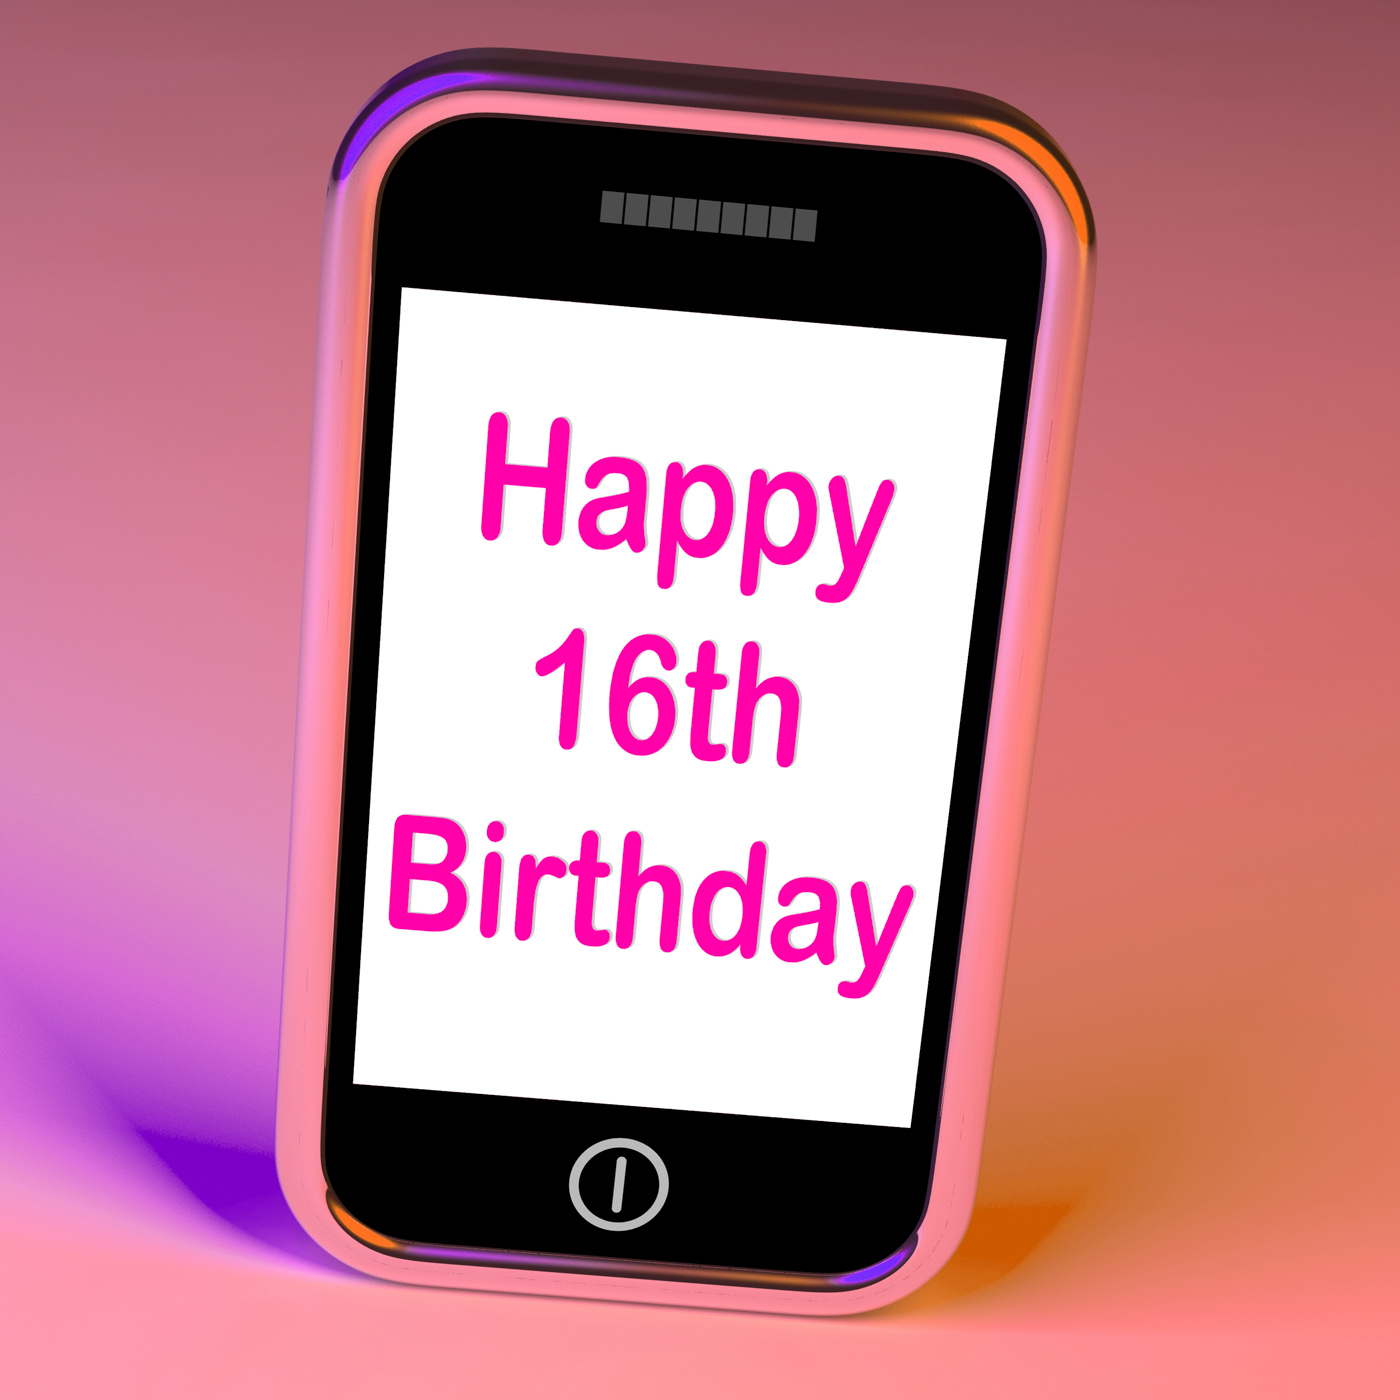 Happy 16th birthday on phone means sixteenth photo